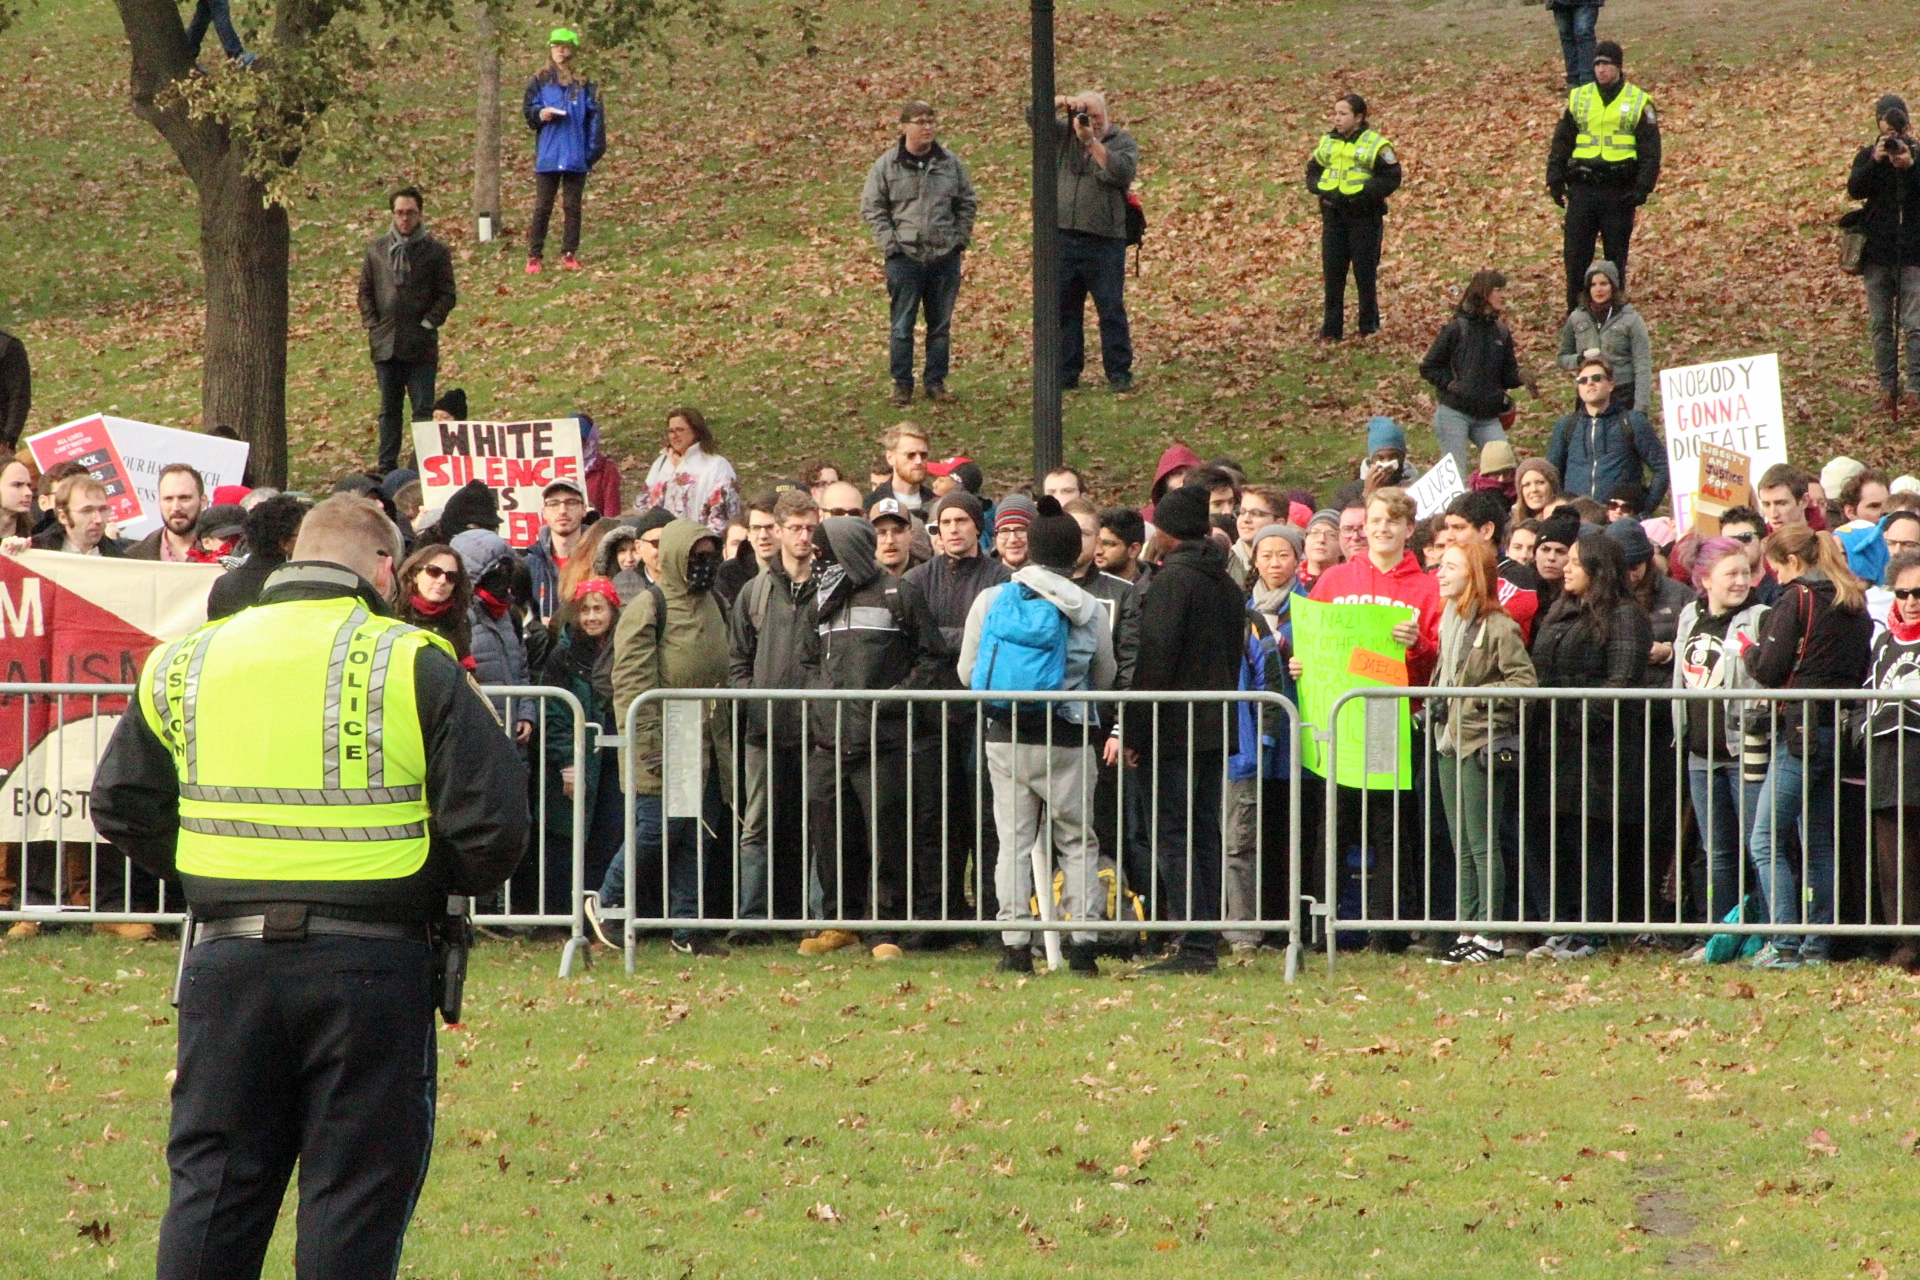 2017-11-18 Boston Common Free Speech Rally 01